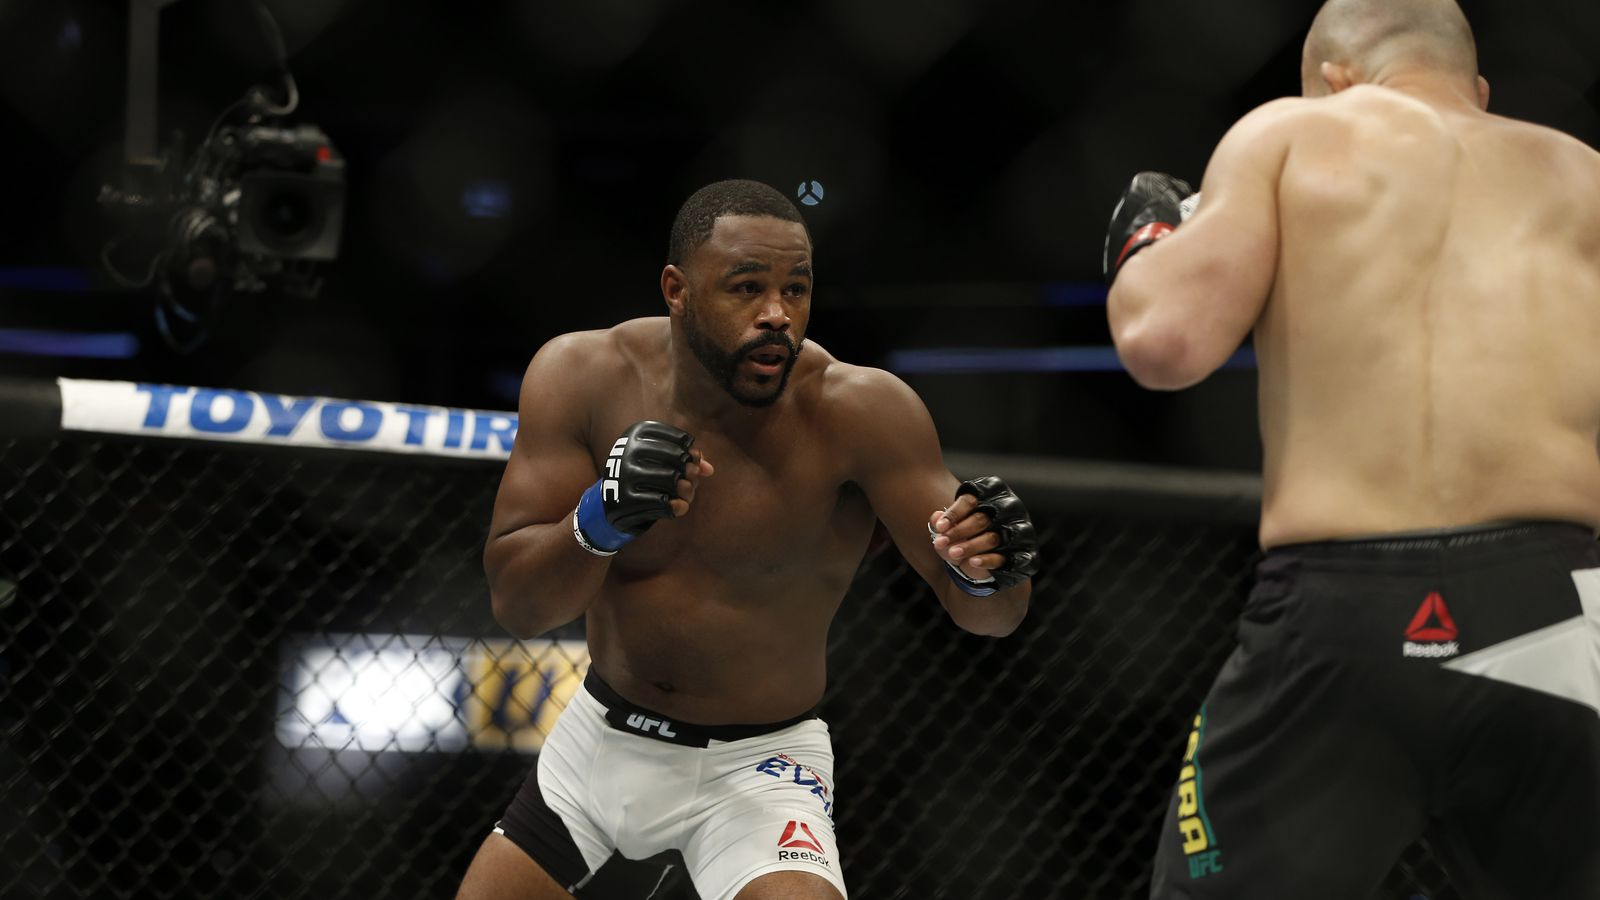 Rashad Evans vs. Daniel Kelly targeted for UFC 209